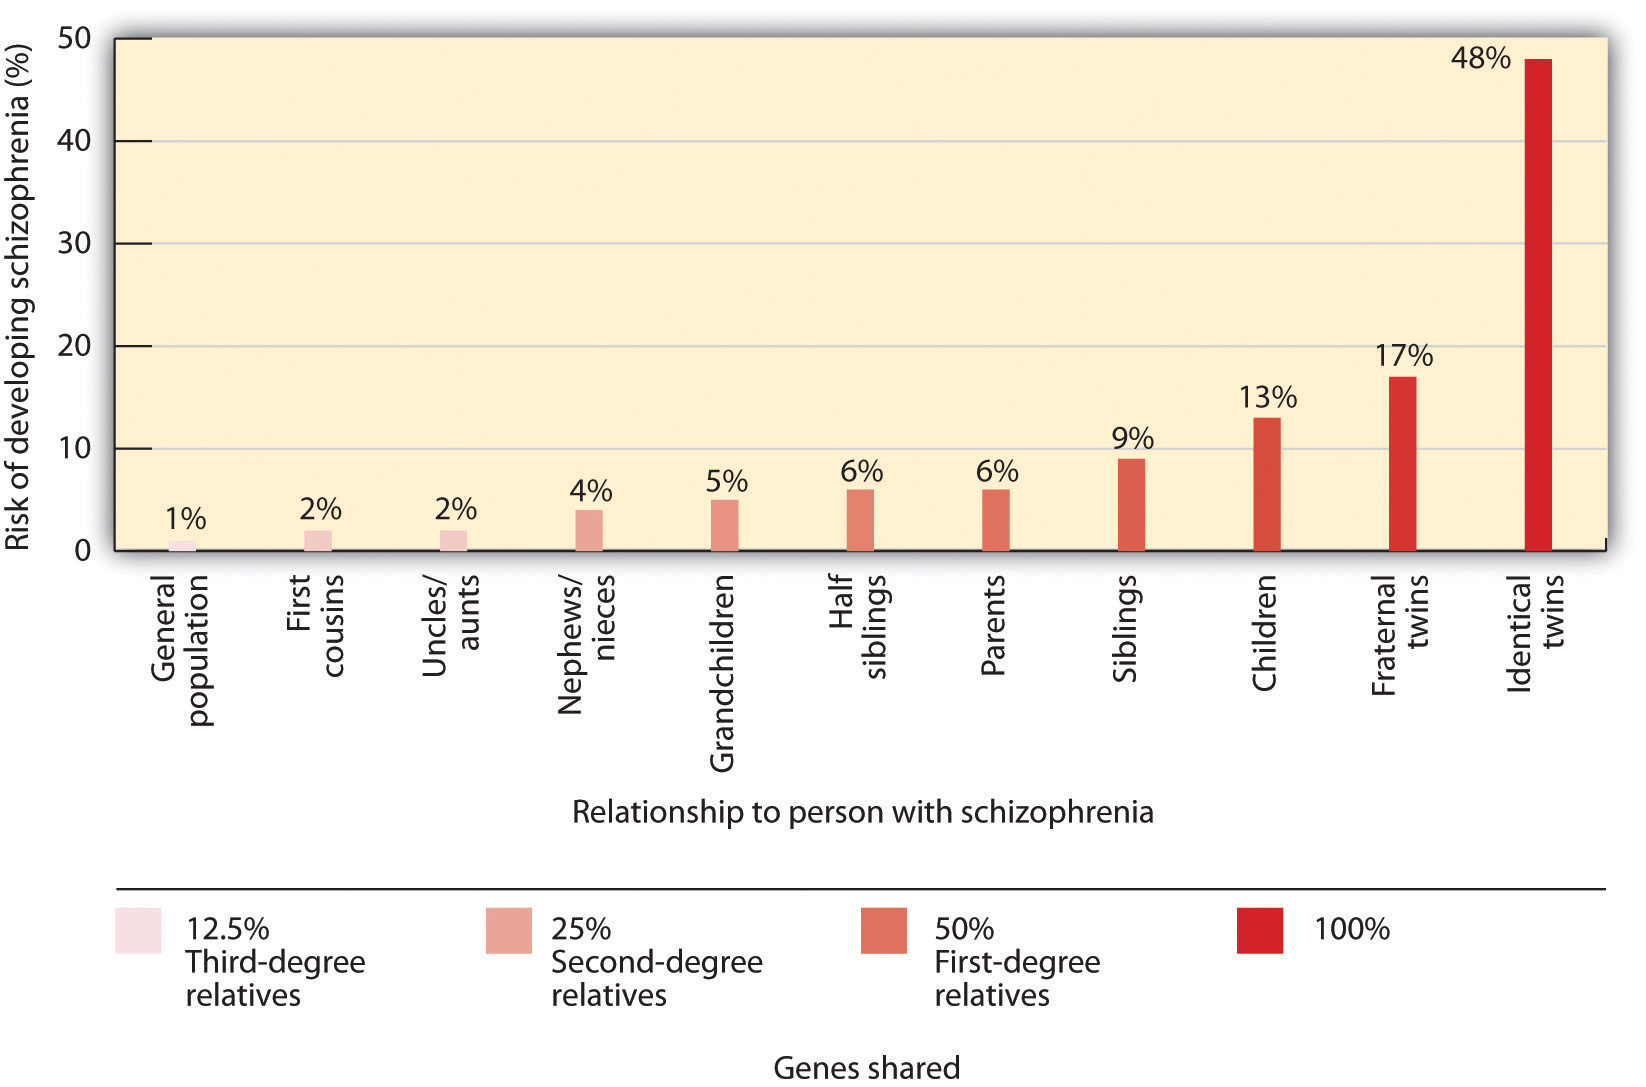 Genetic Disposition to Develop Schizophrenia. Long description available.